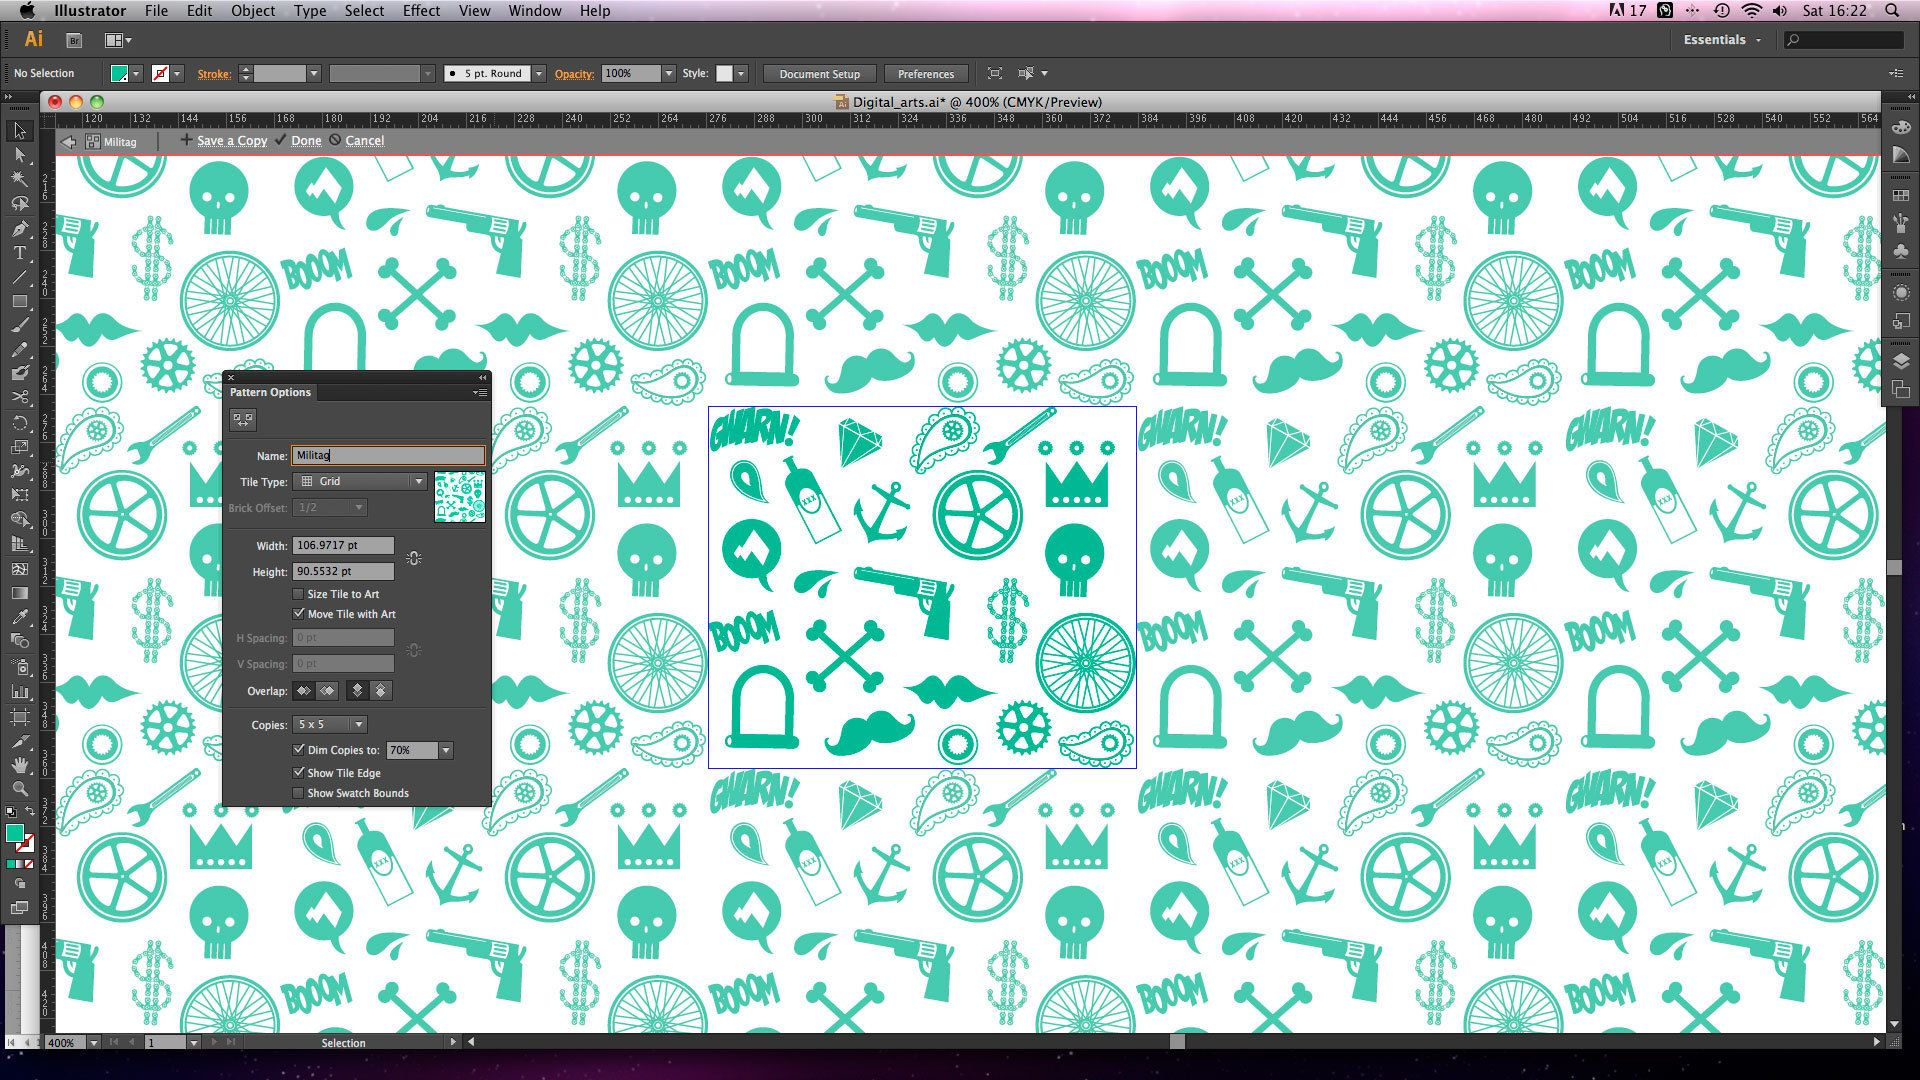 Adobe Illustrator Tutorial Create Seamless Repeating Patterns